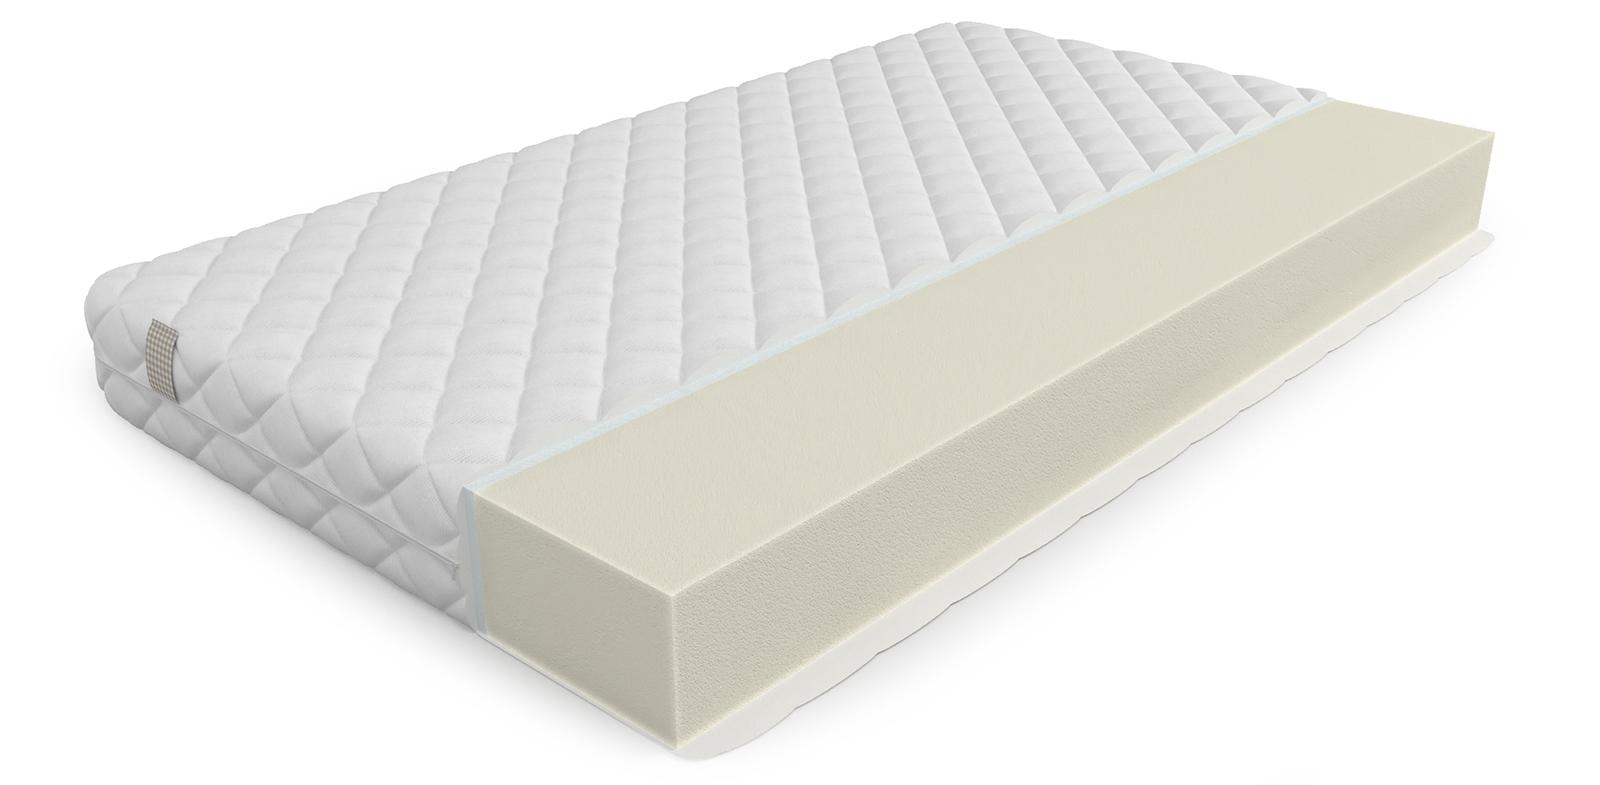 Купить матрас Mr.Mattress Compact XL